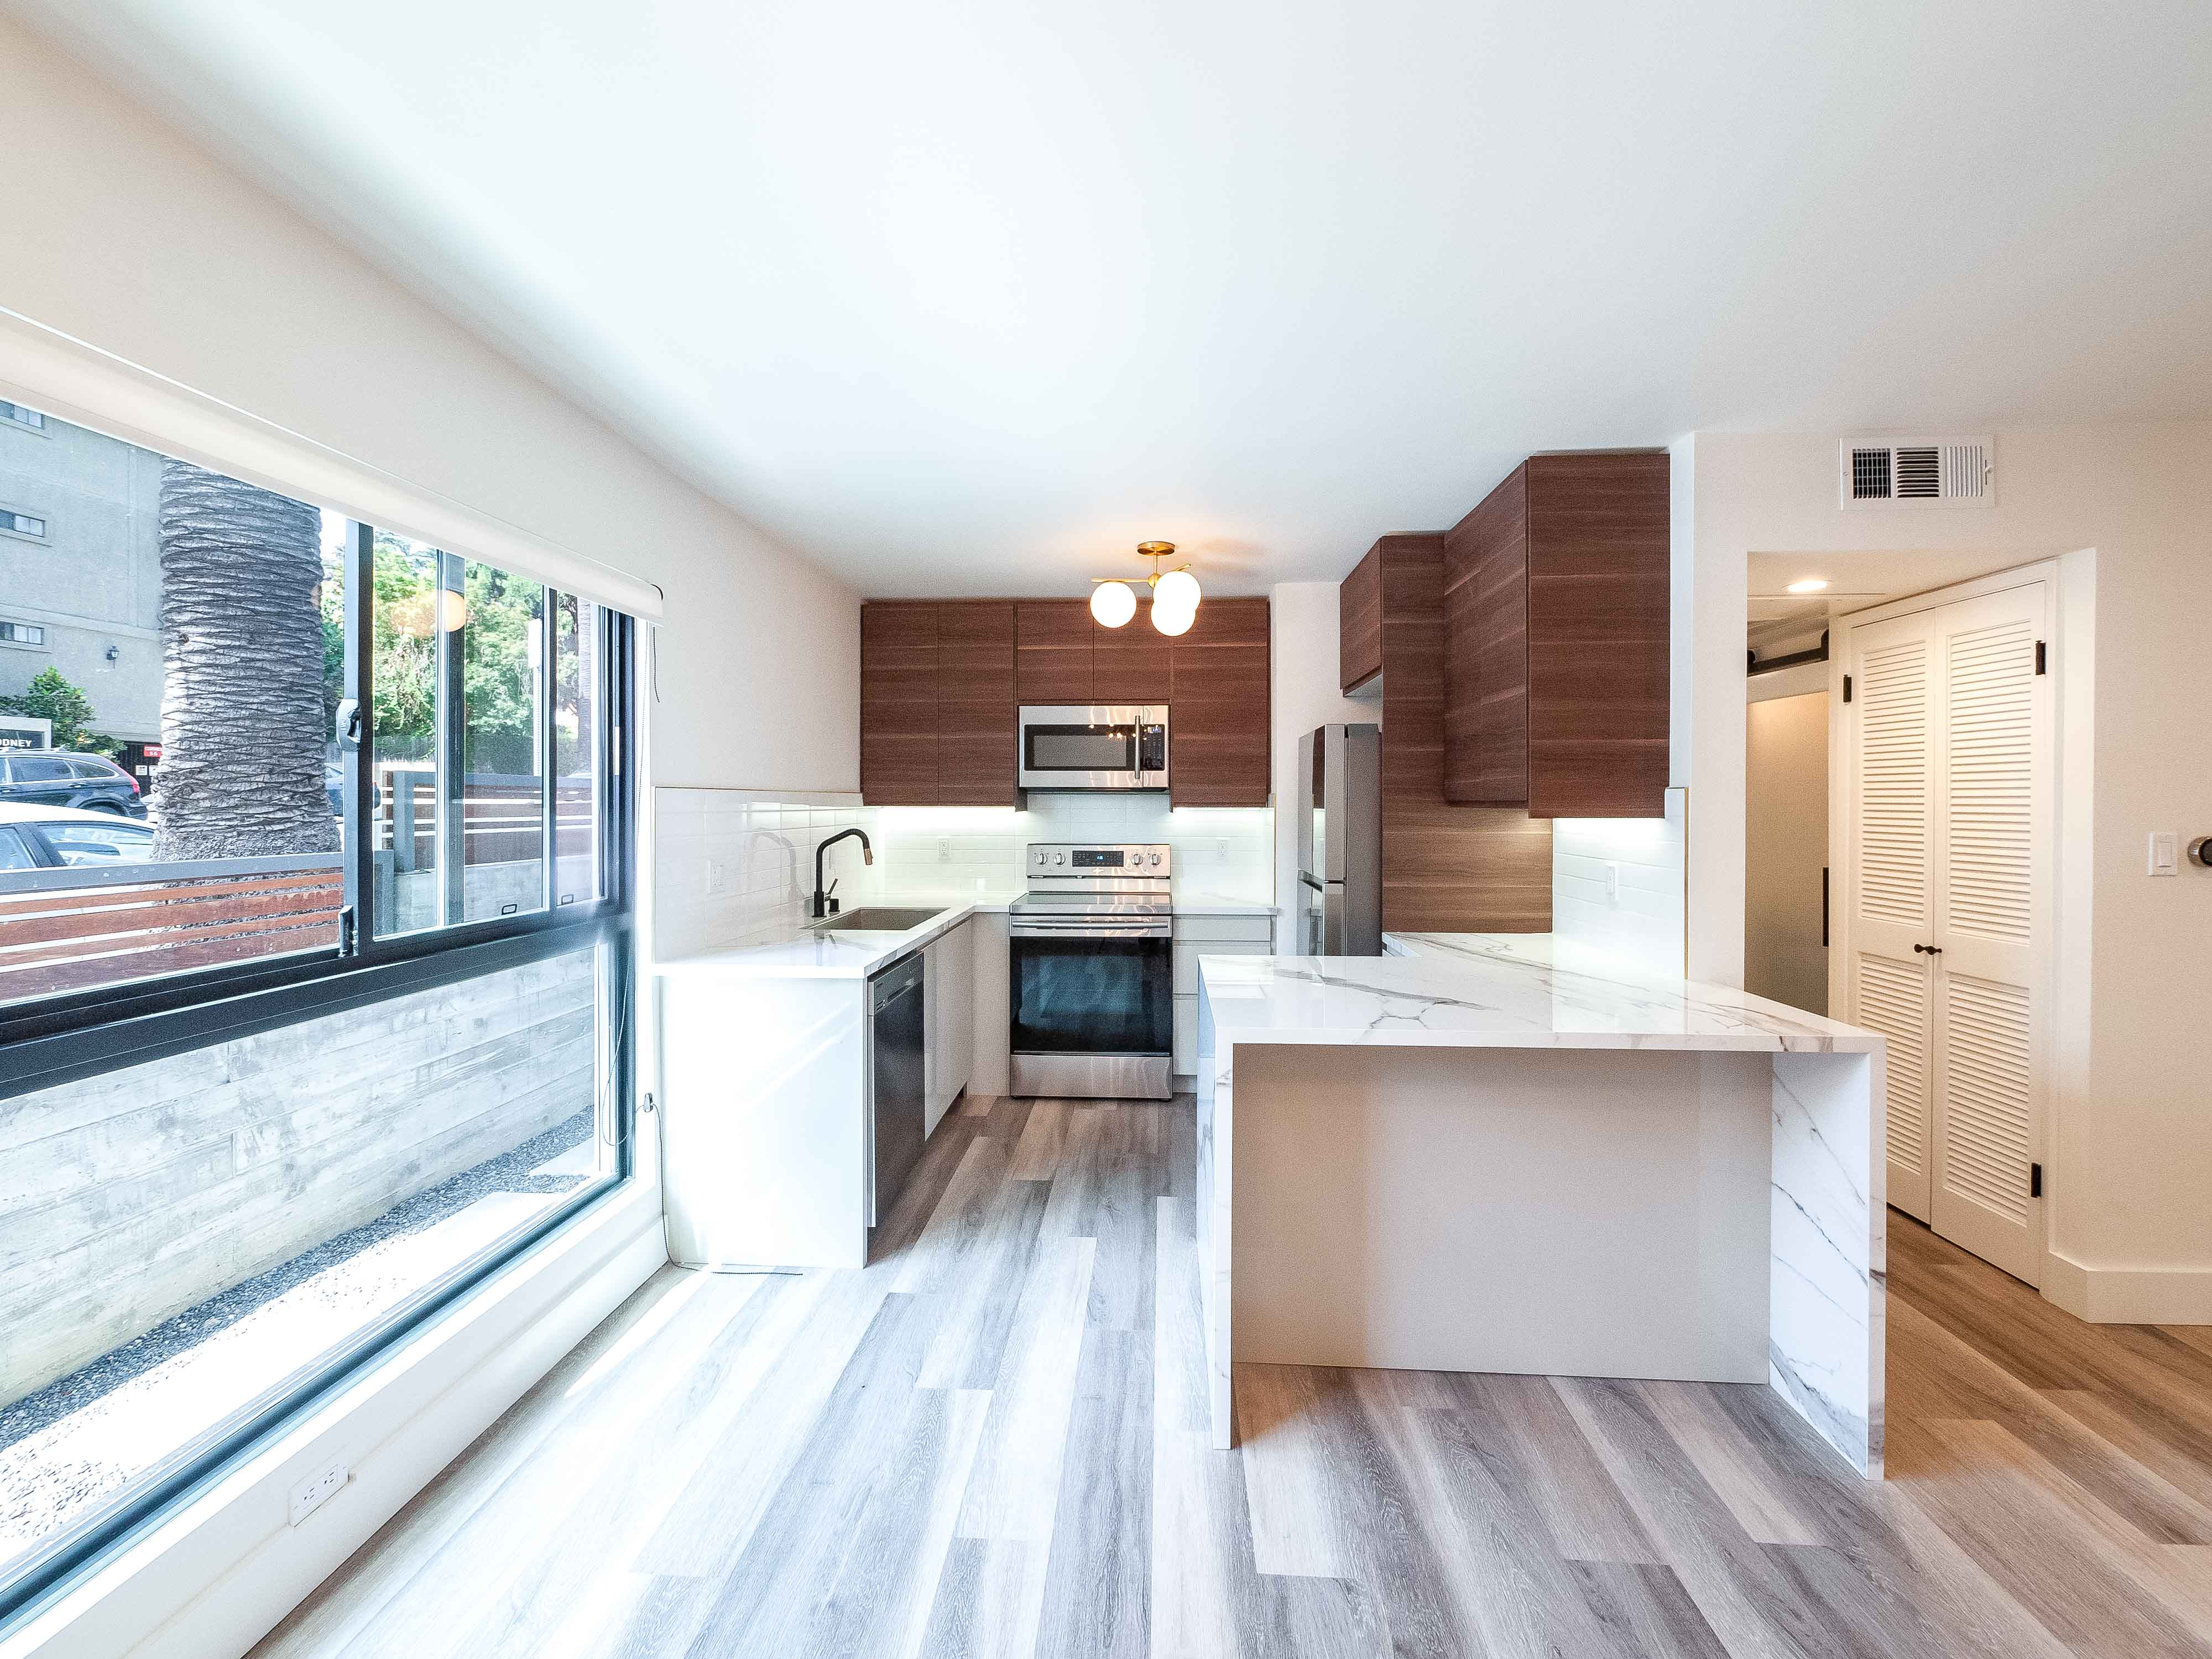 Luxurious Designer Pad | 400 Sq Ft Private Patio | High-End Upgrades| Parking + Laundry in unit | Walker's Paradise!